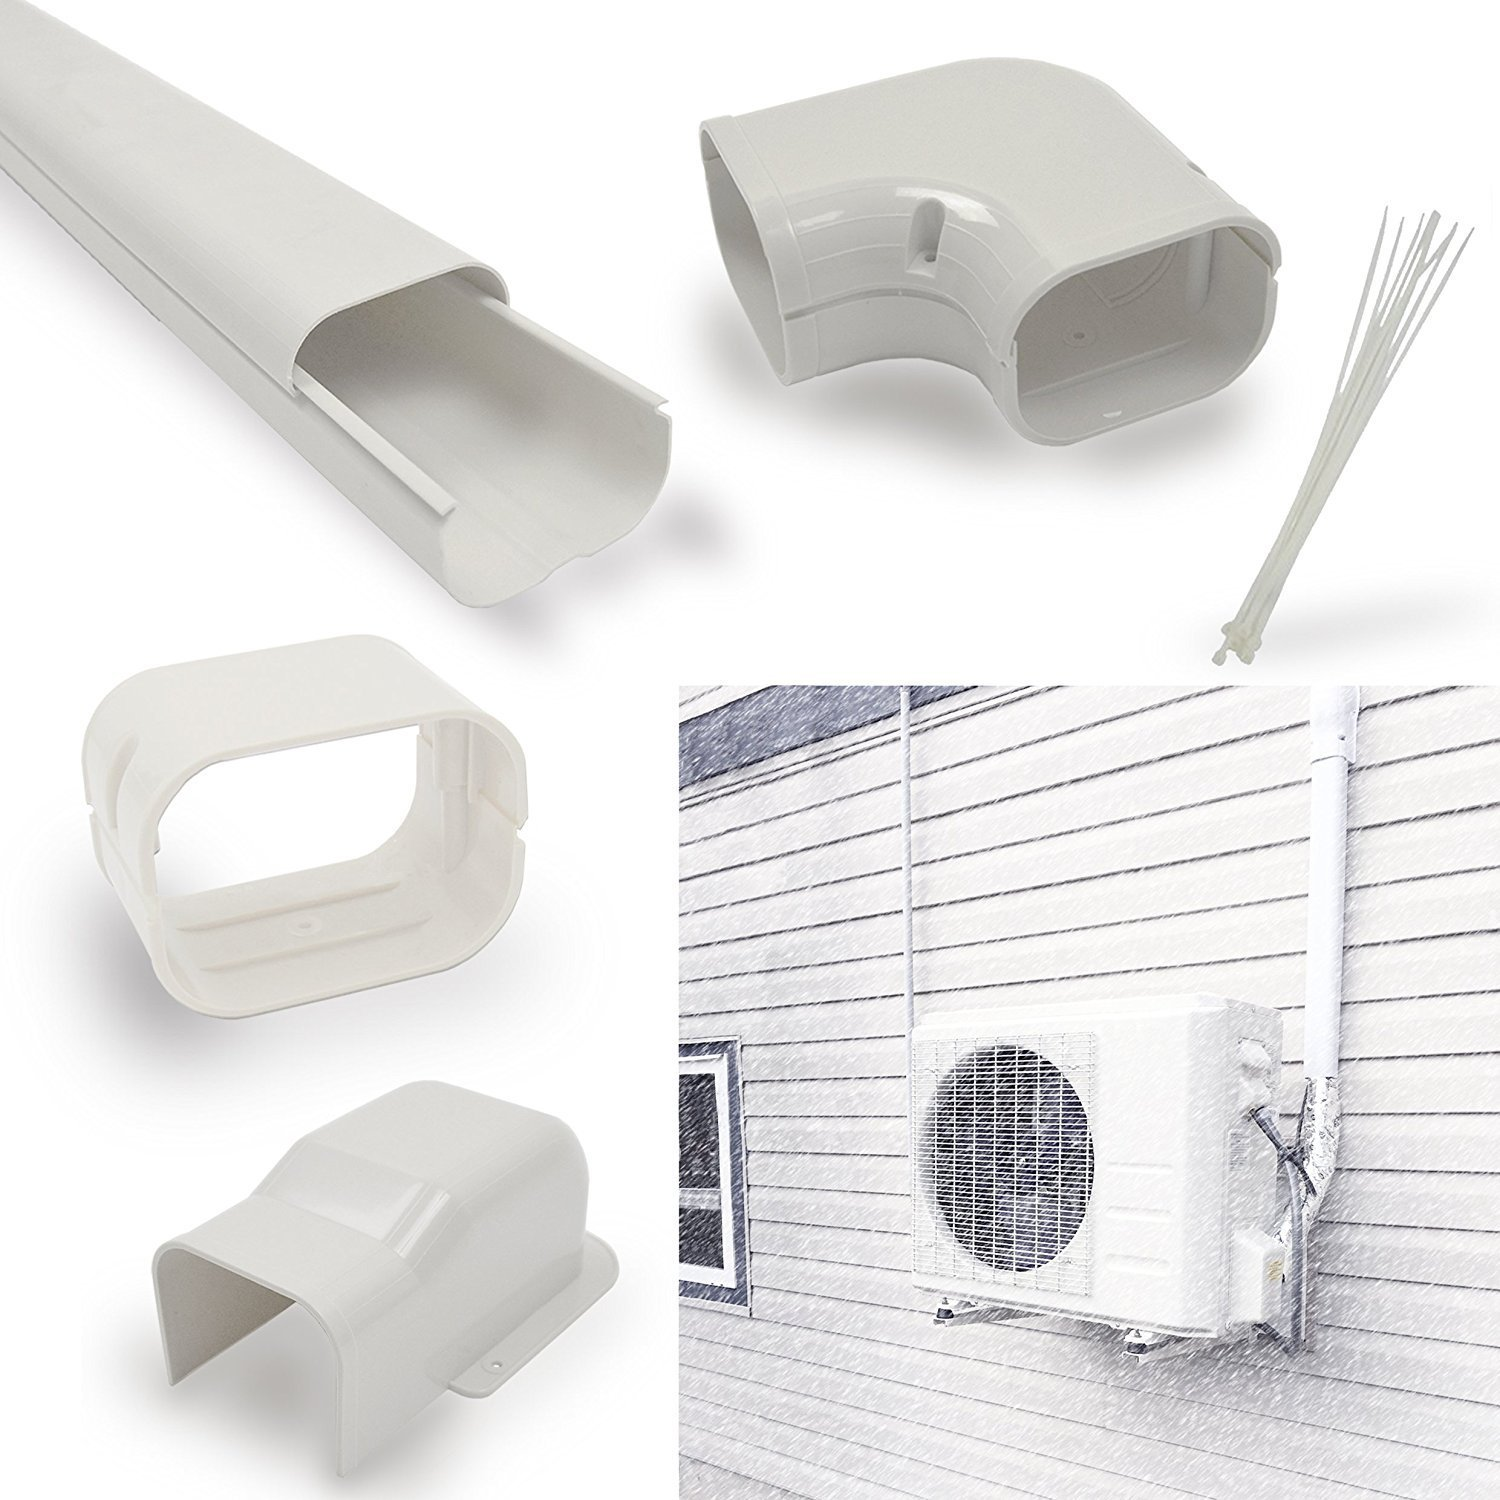 Jeacent 4 W 14'Ft Line Set Cover Kit -Decorative Tubing Cover for Mini Split and Central Air Conditioner &Heat Pump Jeacent Inovations